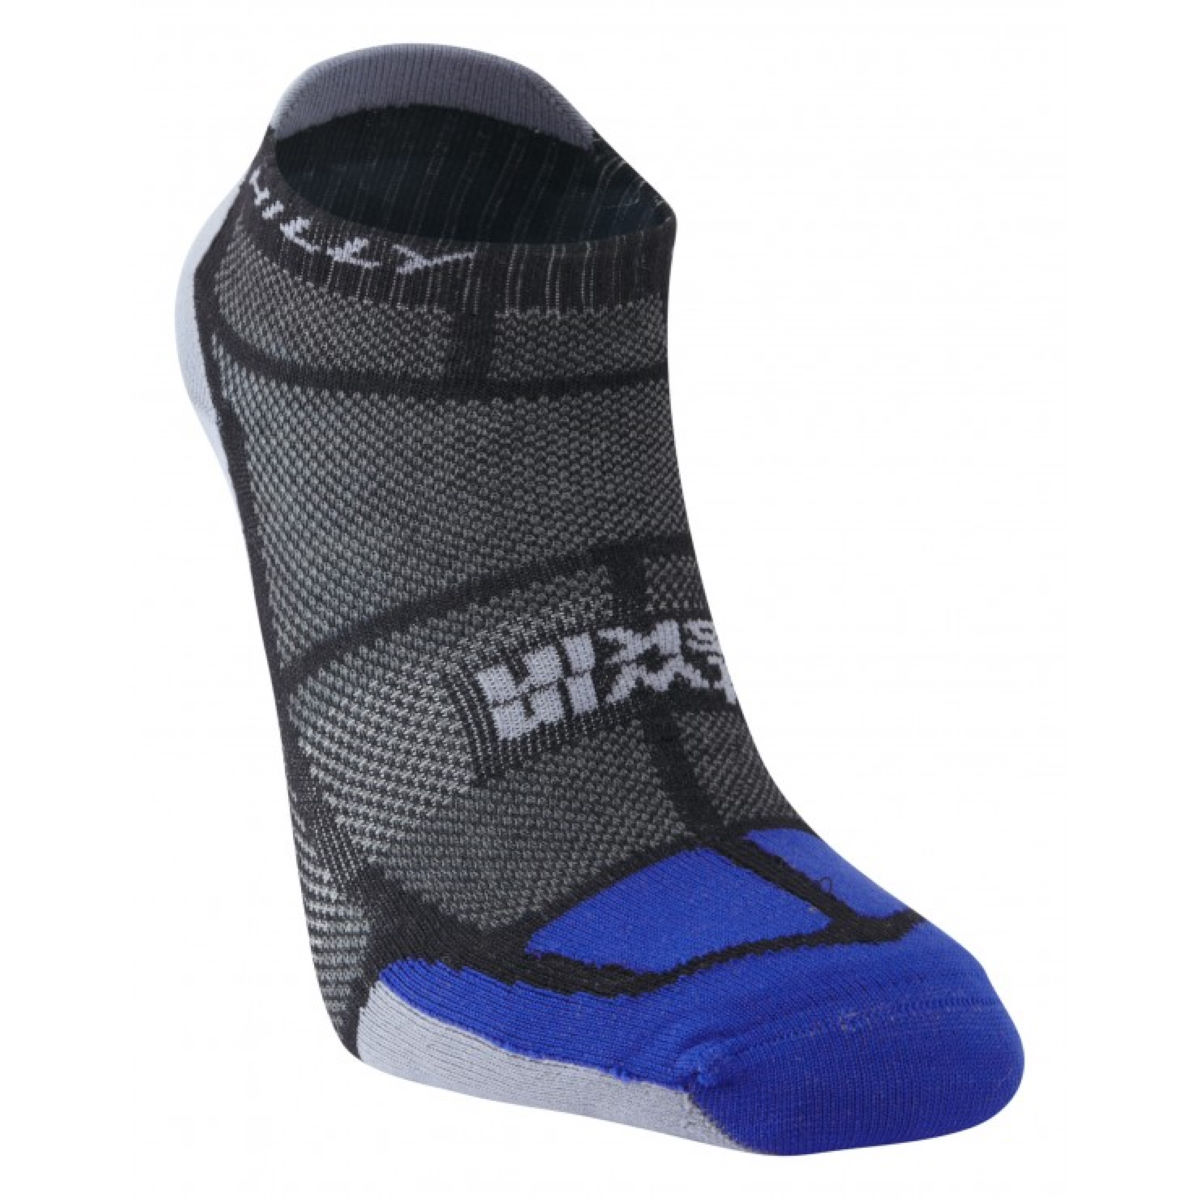 Chaussettes Hilly TwinSkin - S Black/Blue/Grey